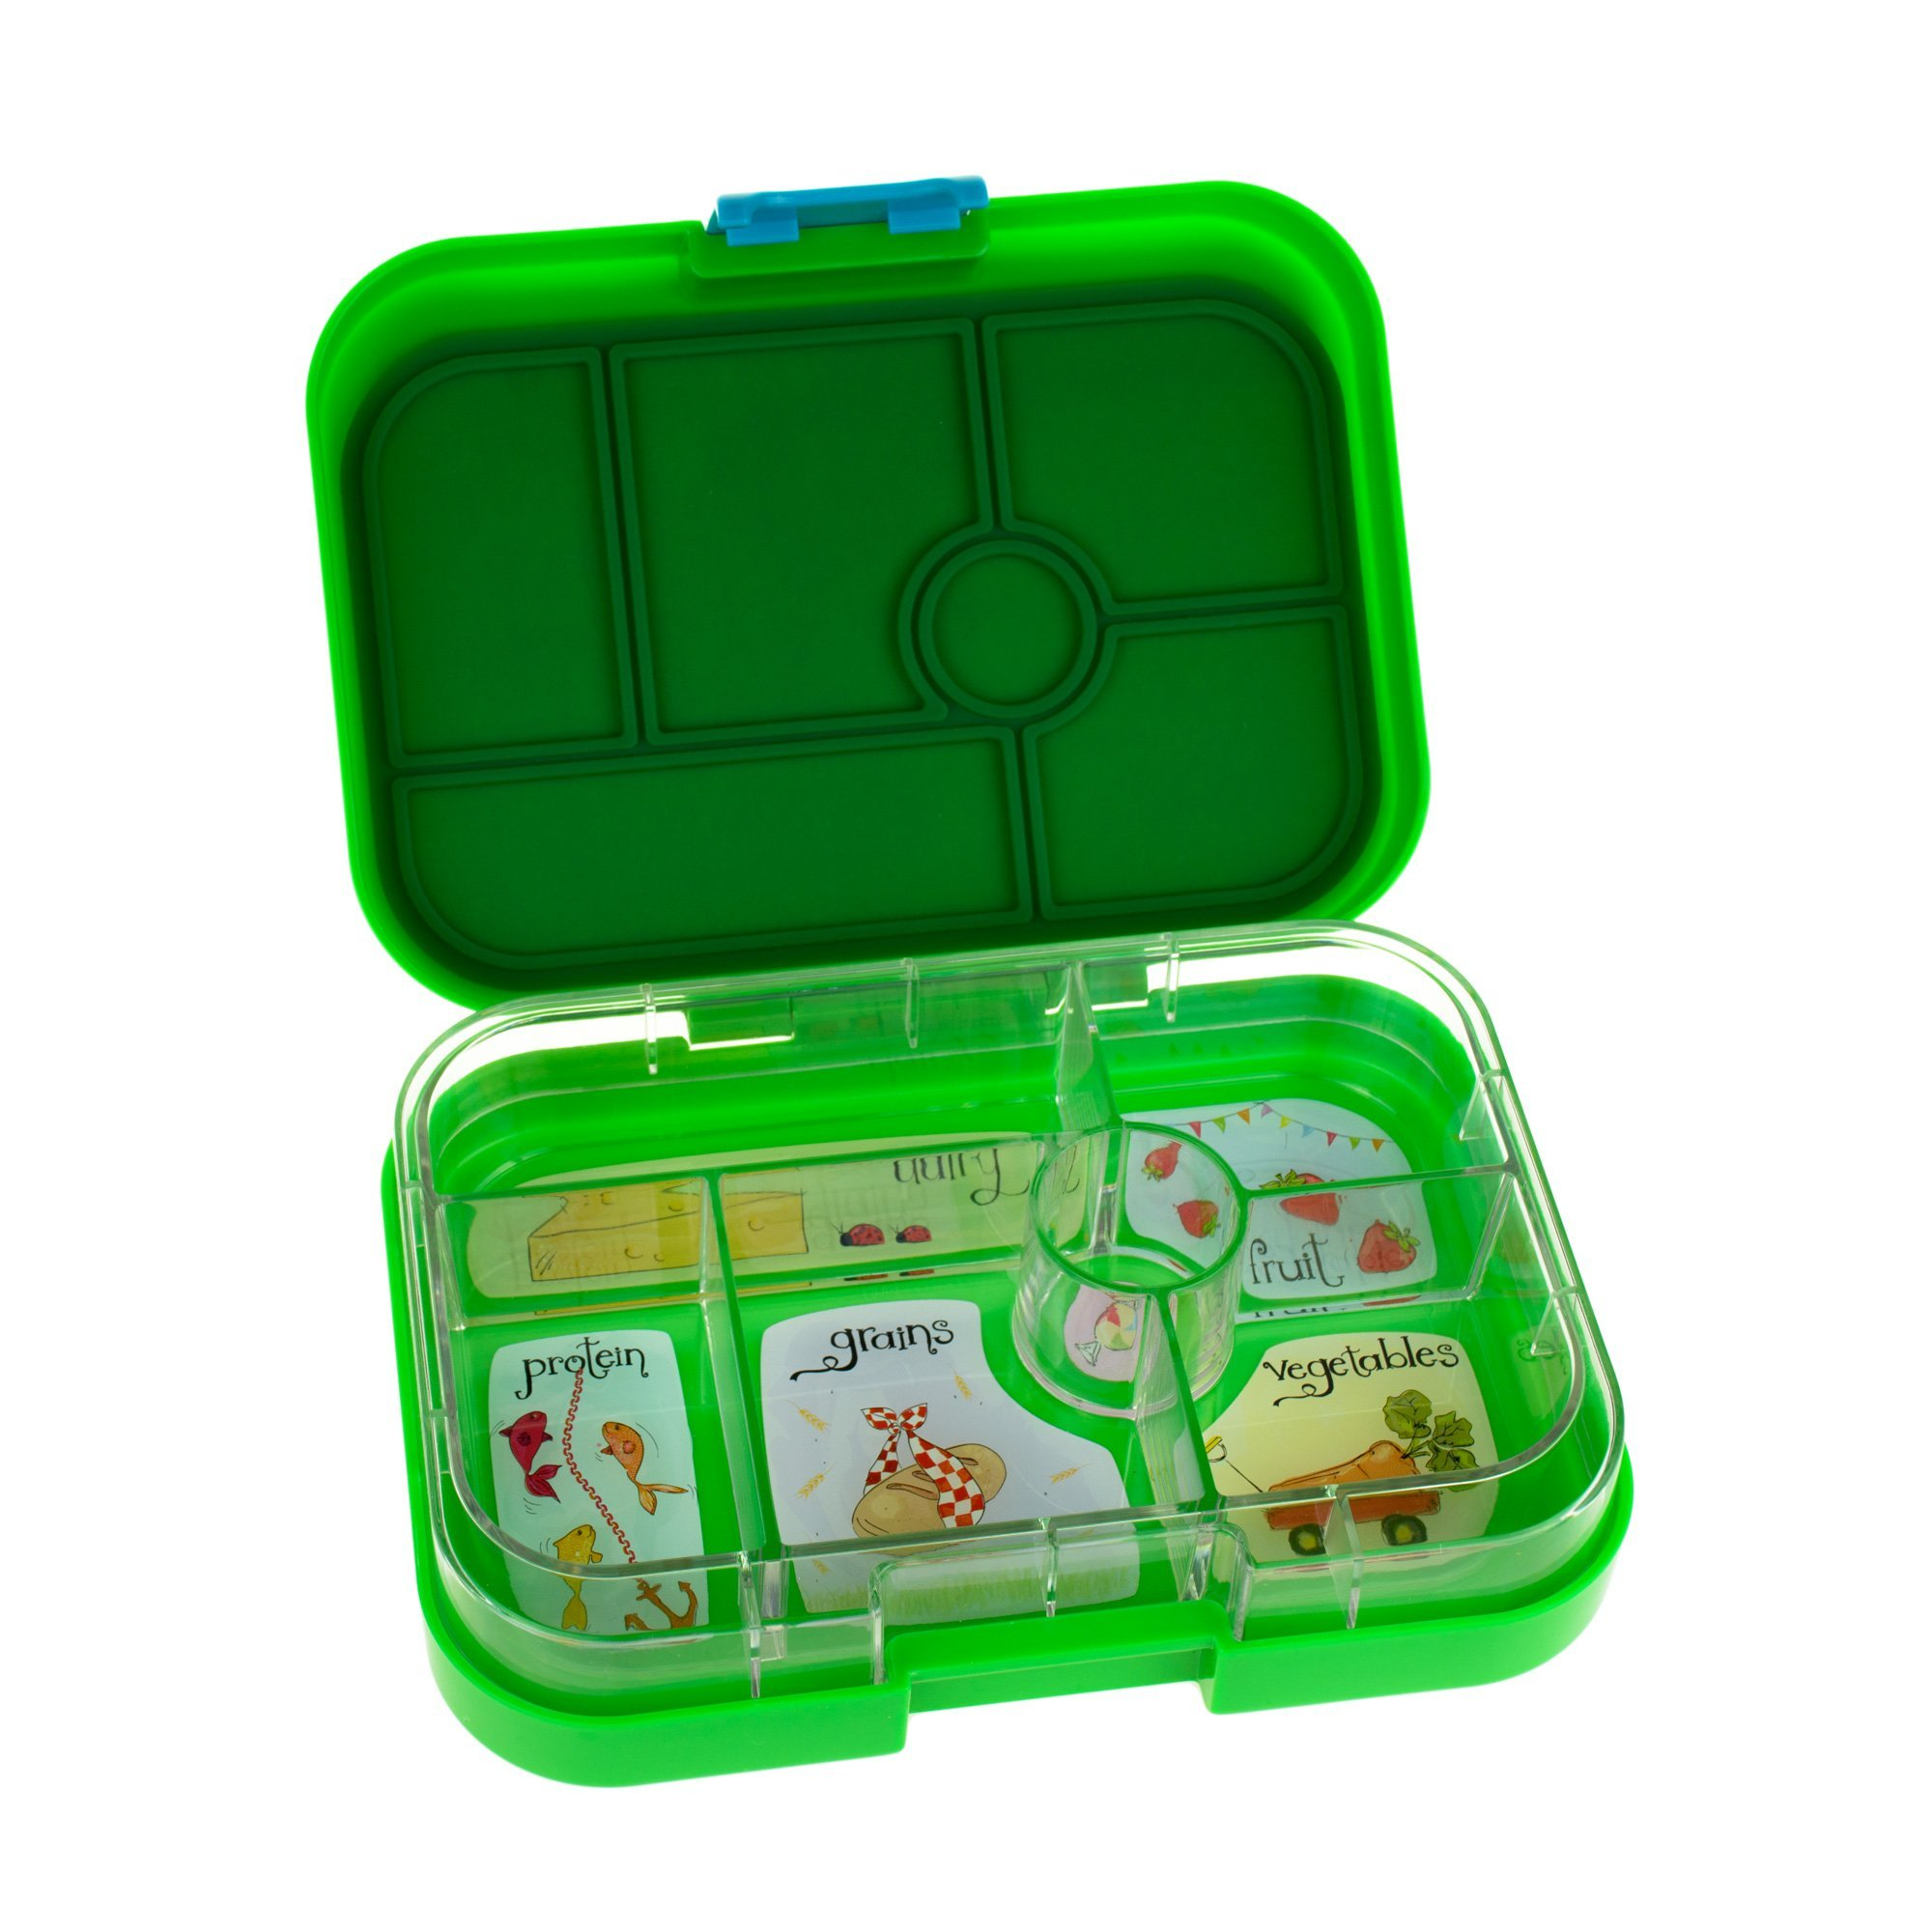 yumbox pomme green leakproof bento lunch box container for kids. Black Bedroom Furniture Sets. Home Design Ideas